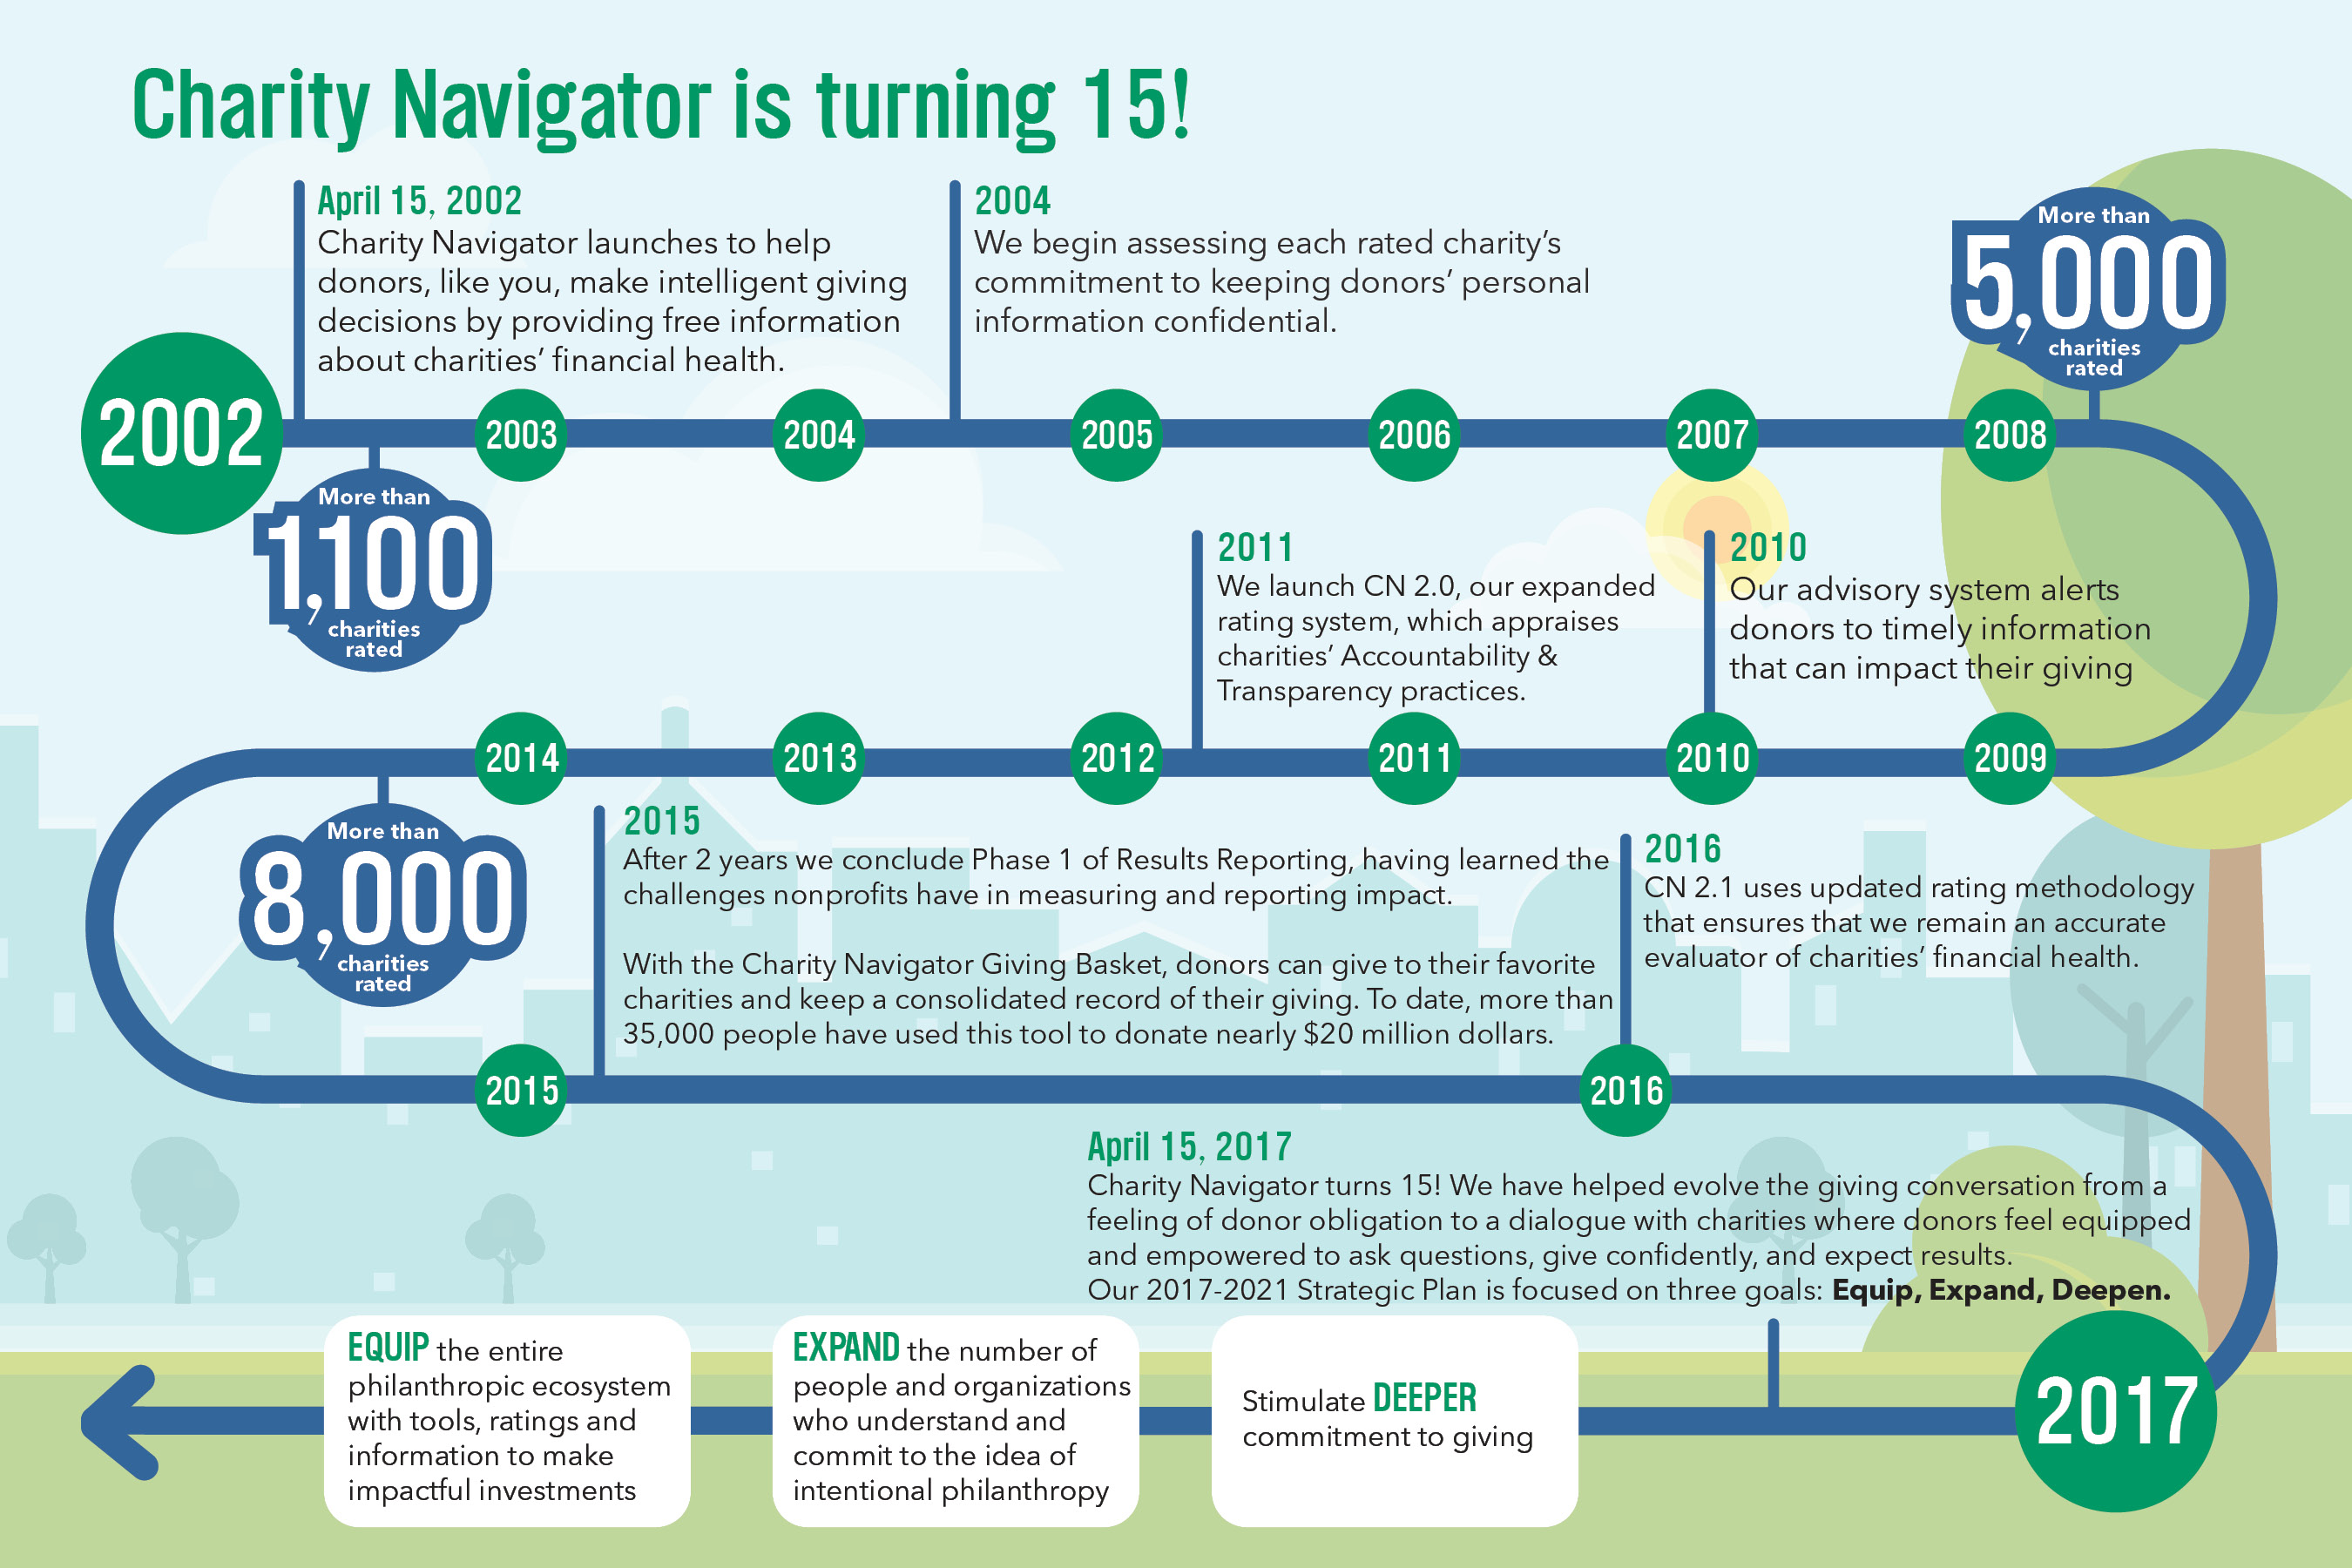 Charity Navigator is Turning 15!